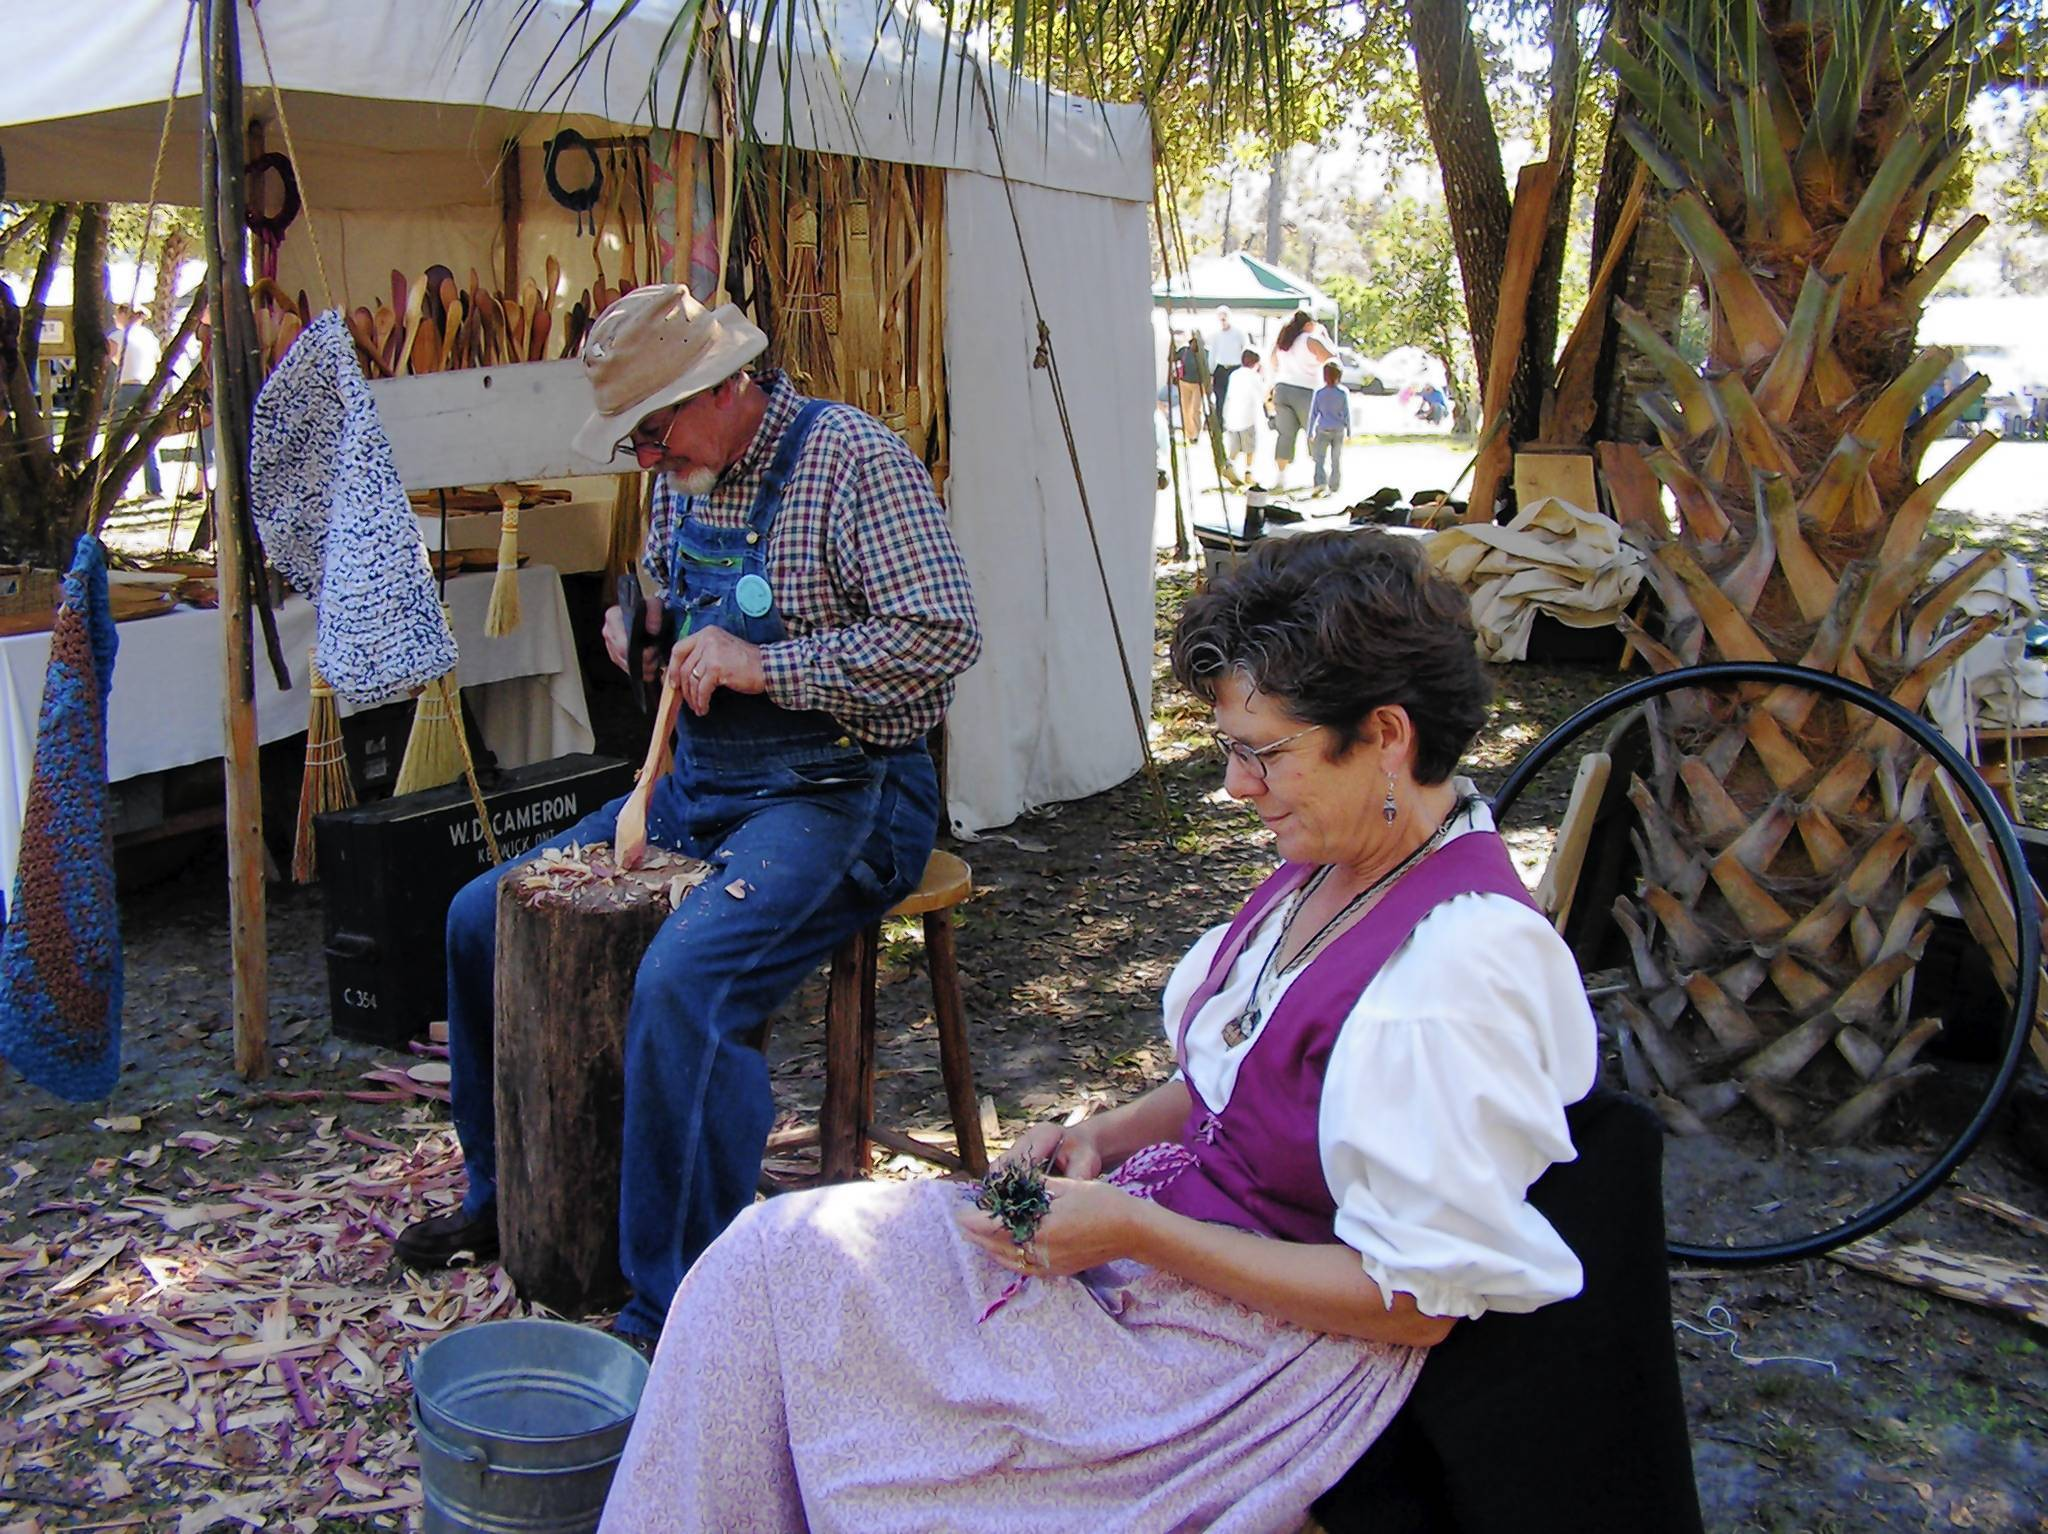 Folk art and crafts are part of the annual Cracker Christmas event at Fort Christmas Historical Park in east Orange County. The 2012 edition is set for Dec. 1 and 2.